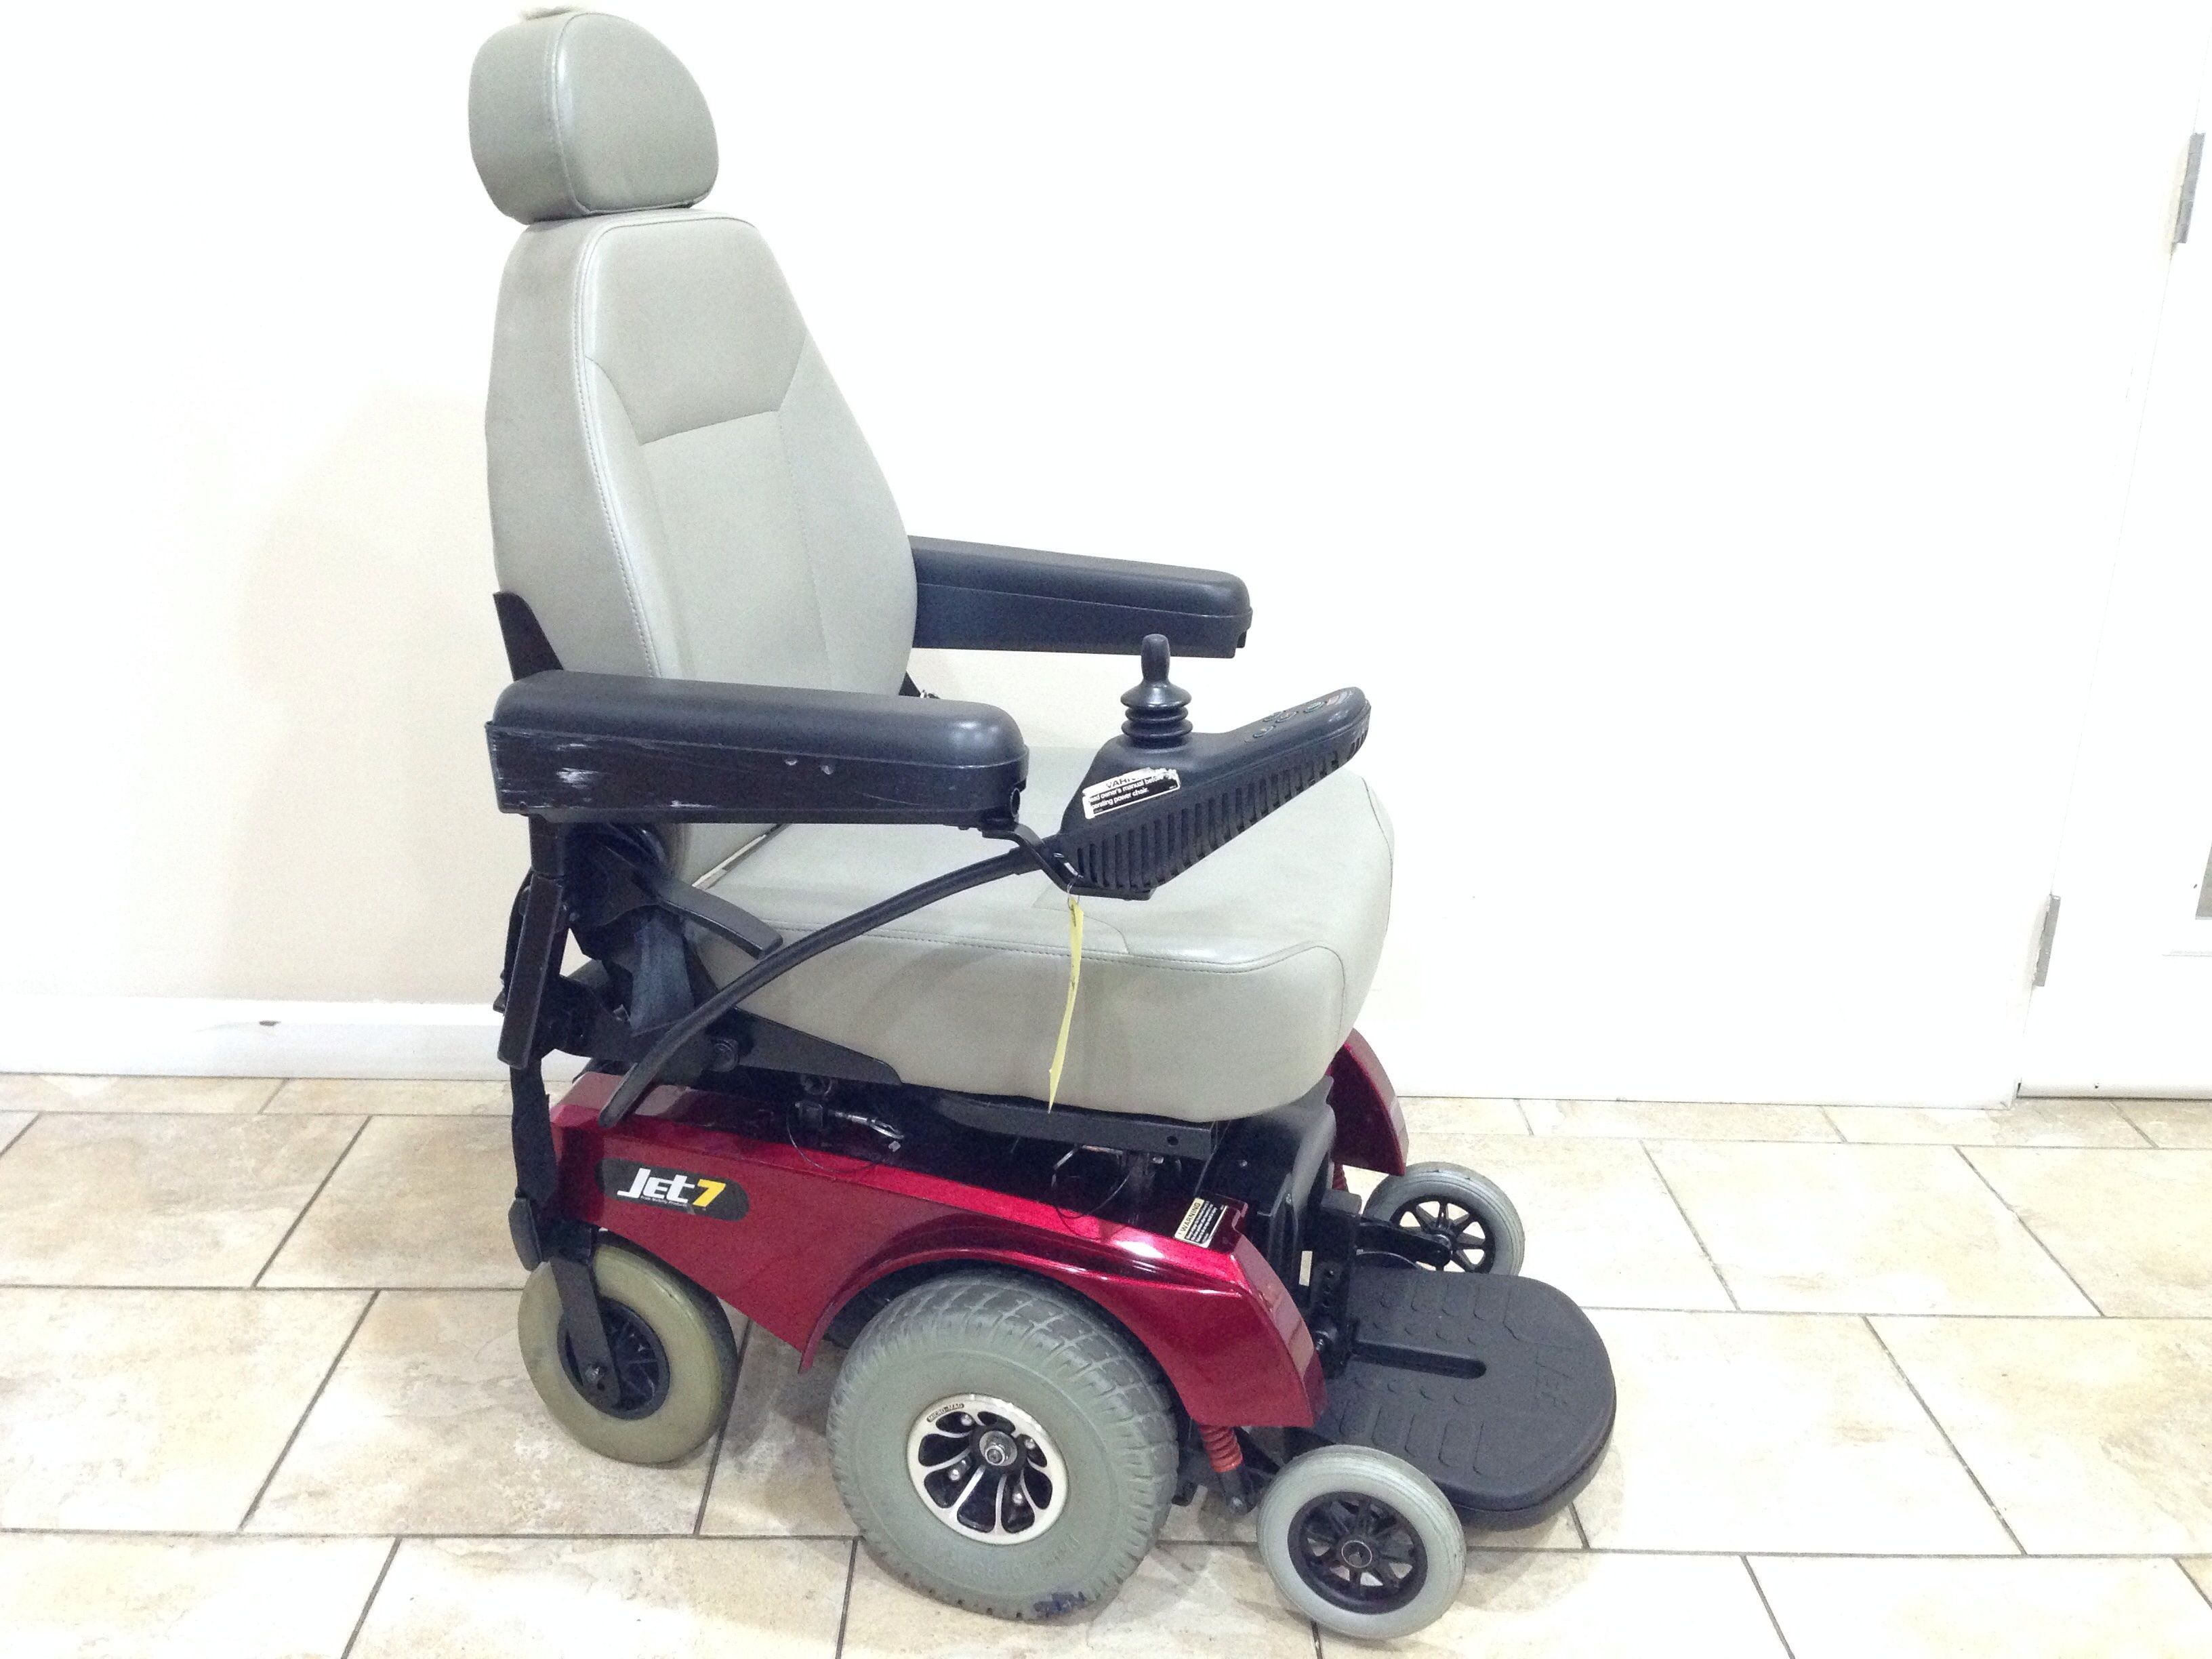 jet 7 power chair indoor lounge cushions pride mobility used